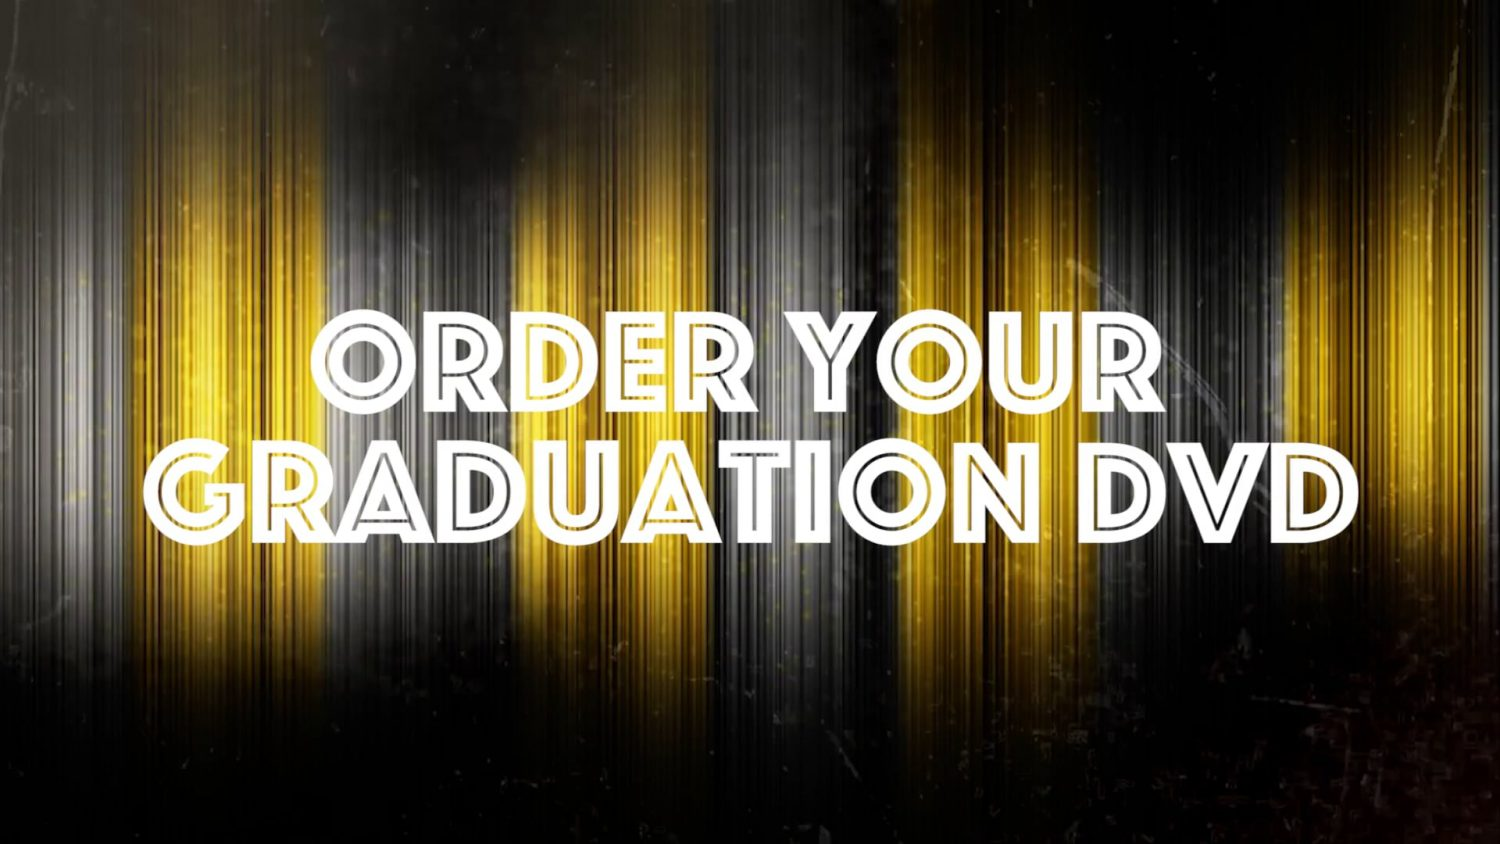 Graduation+DVD+For+Sale